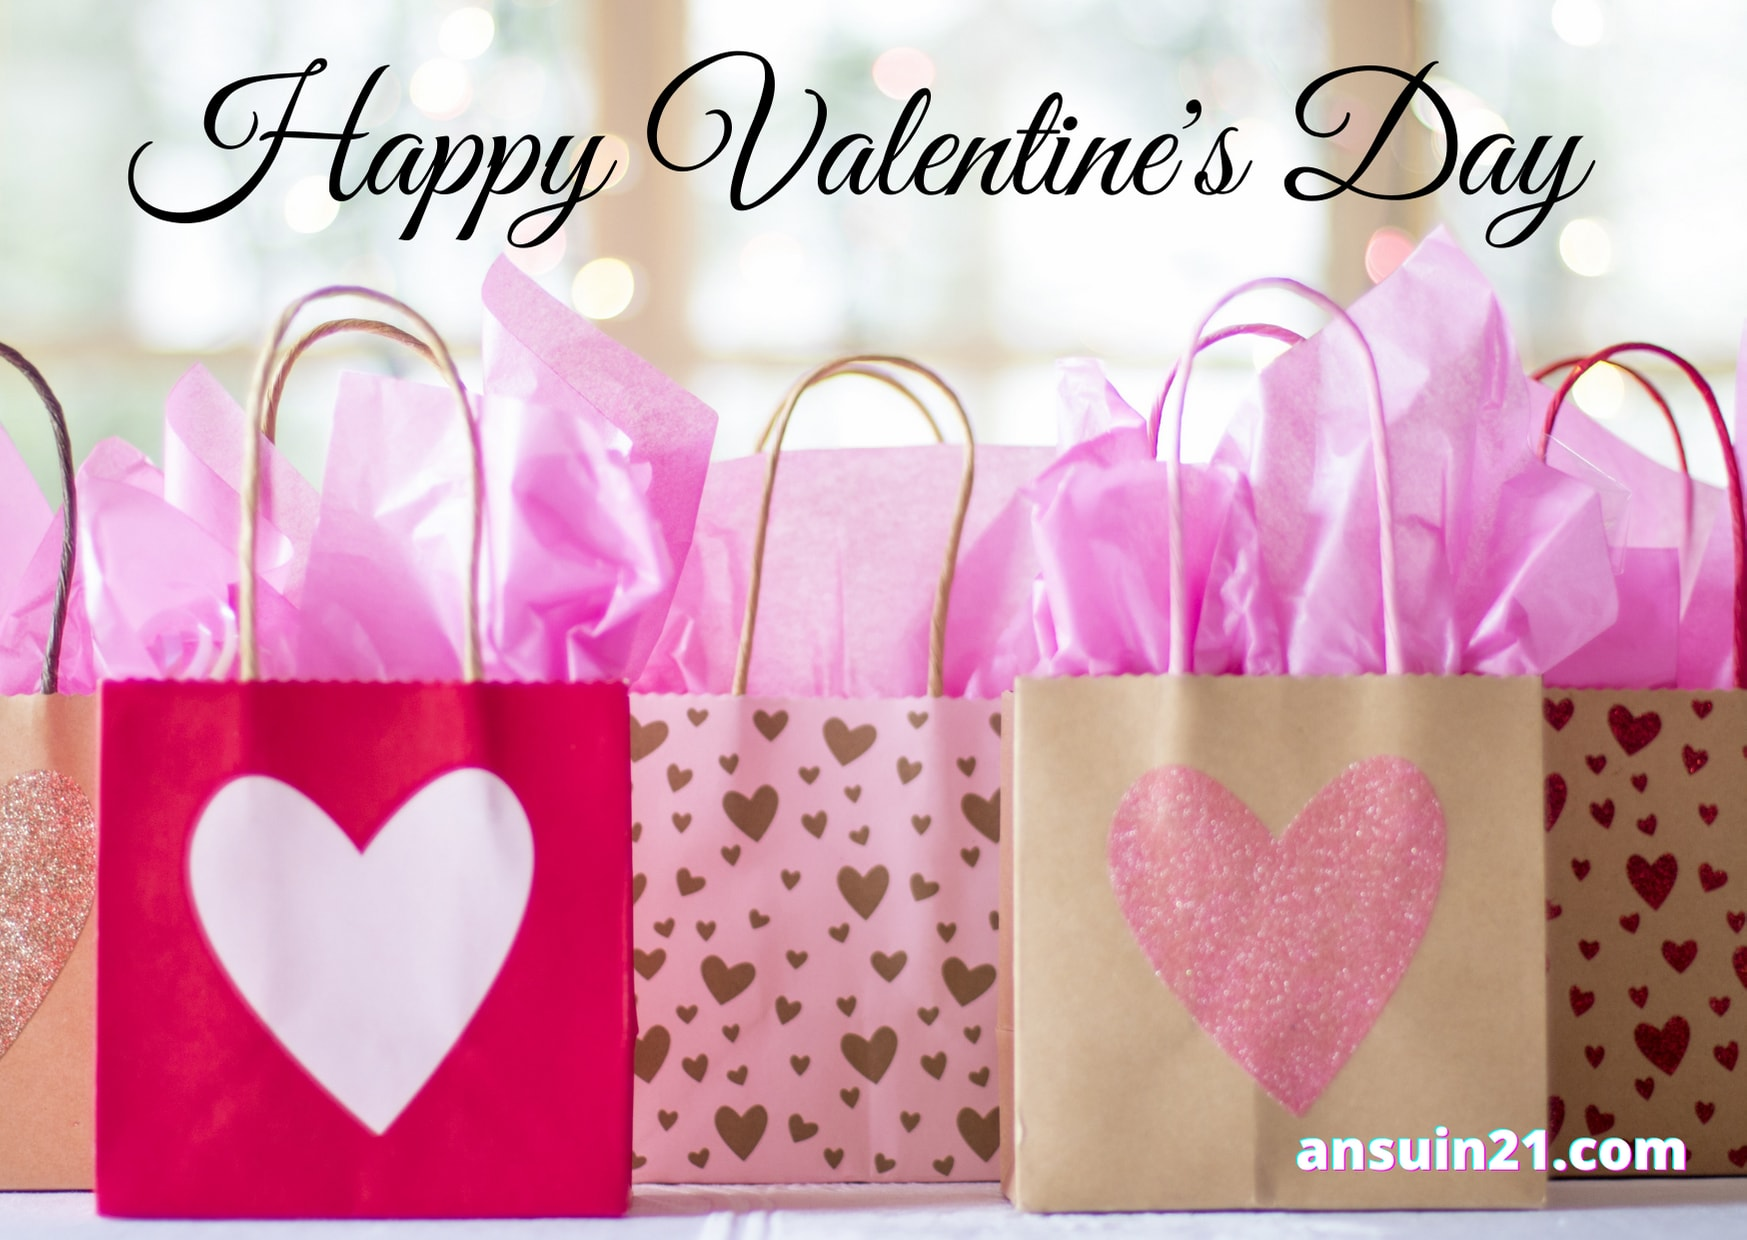 Happy Valentine's Day Wishes, Images & Quotes